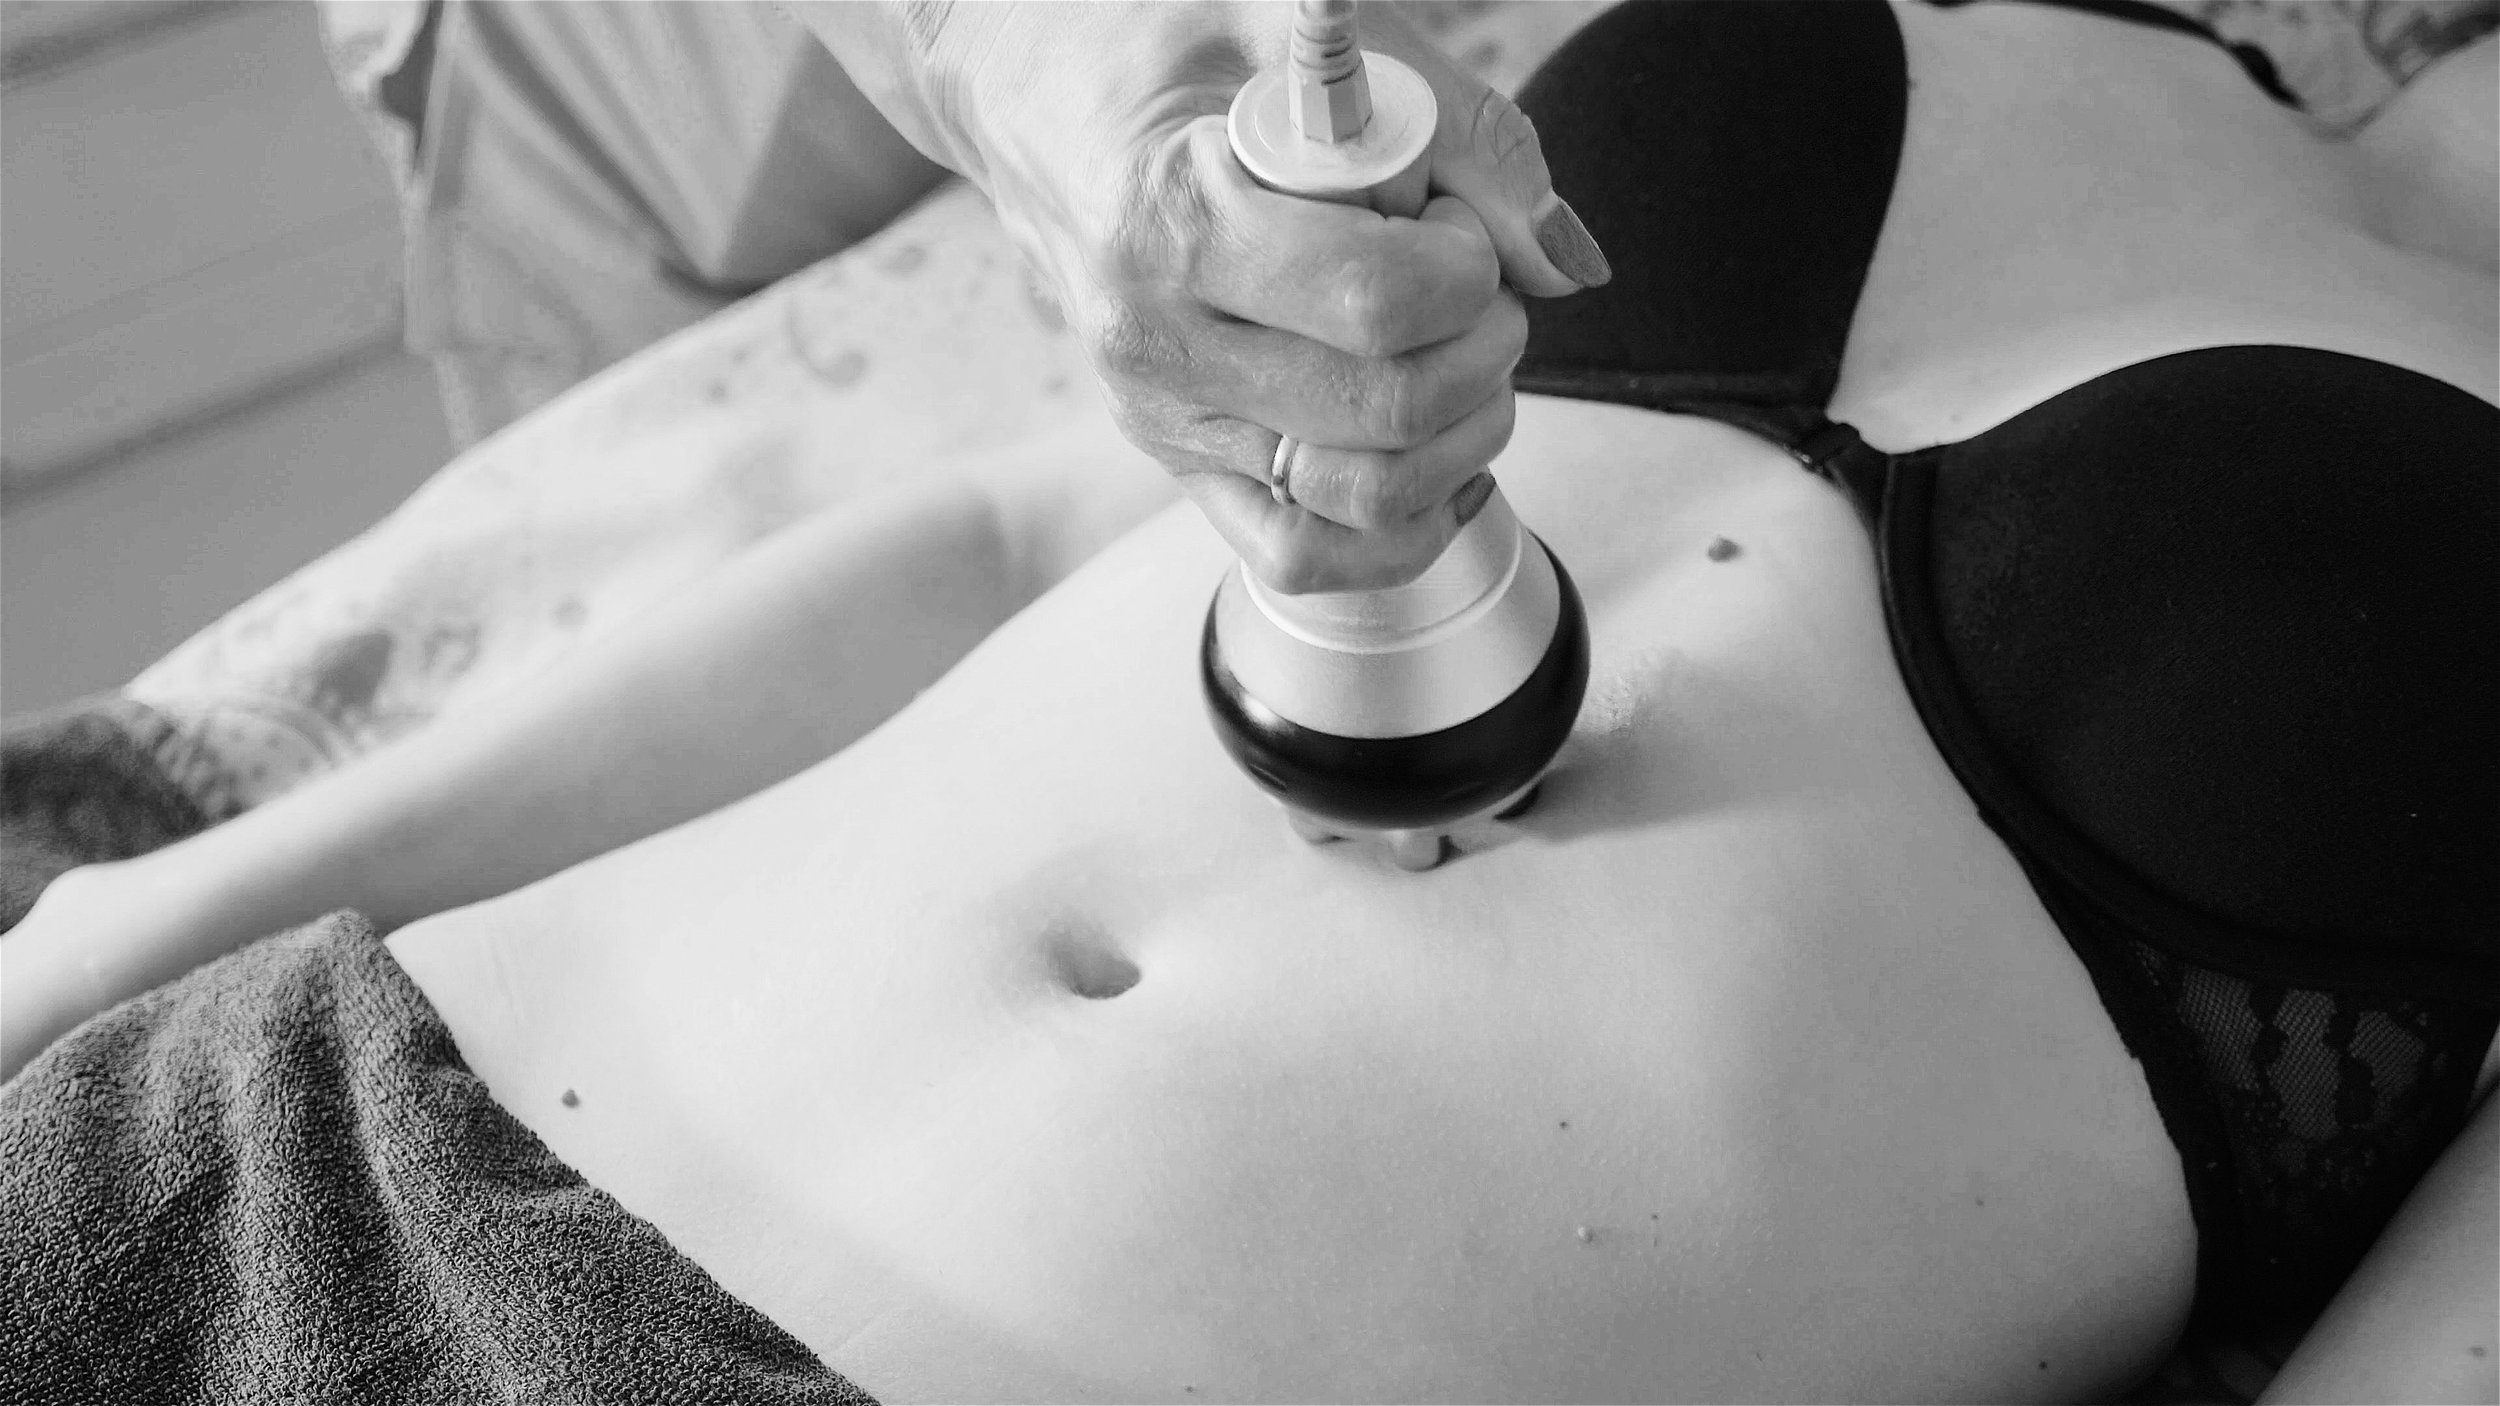 Hardware_figure_correction._Machine_cosmetology._Anti-cellulite_program_for_health_and_slimming 2.JPG